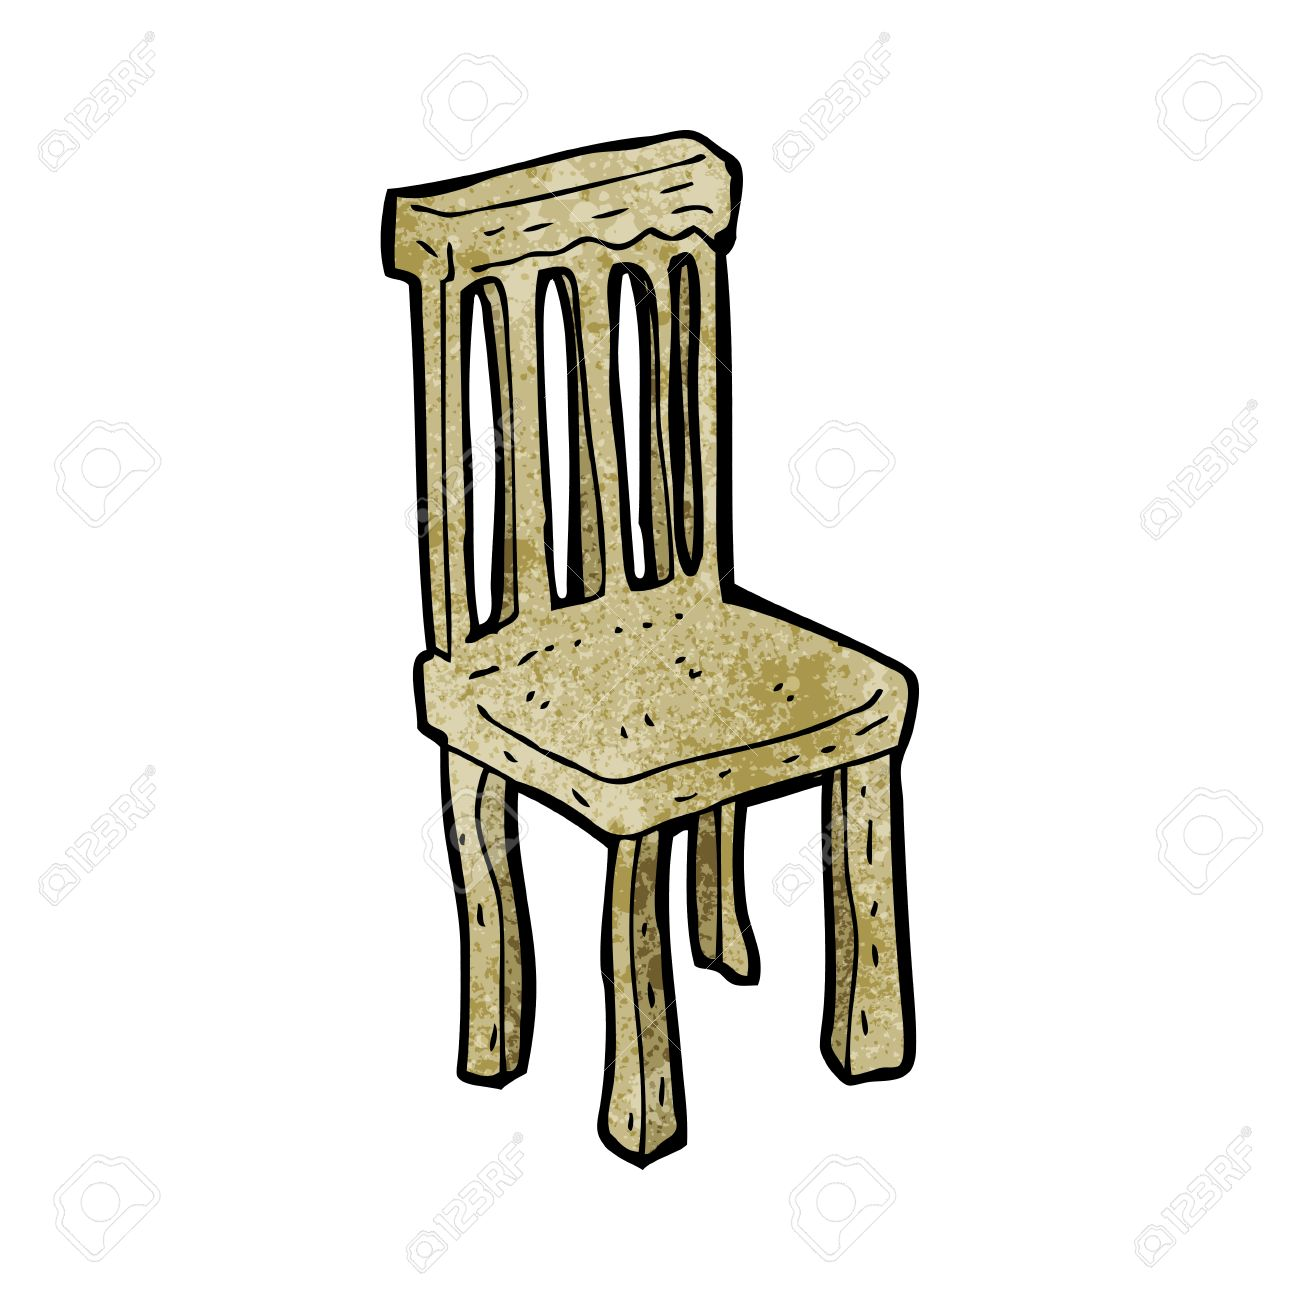 Cartoon Old Wooden Chair Royalty Free Cliparts Vectors And Stock